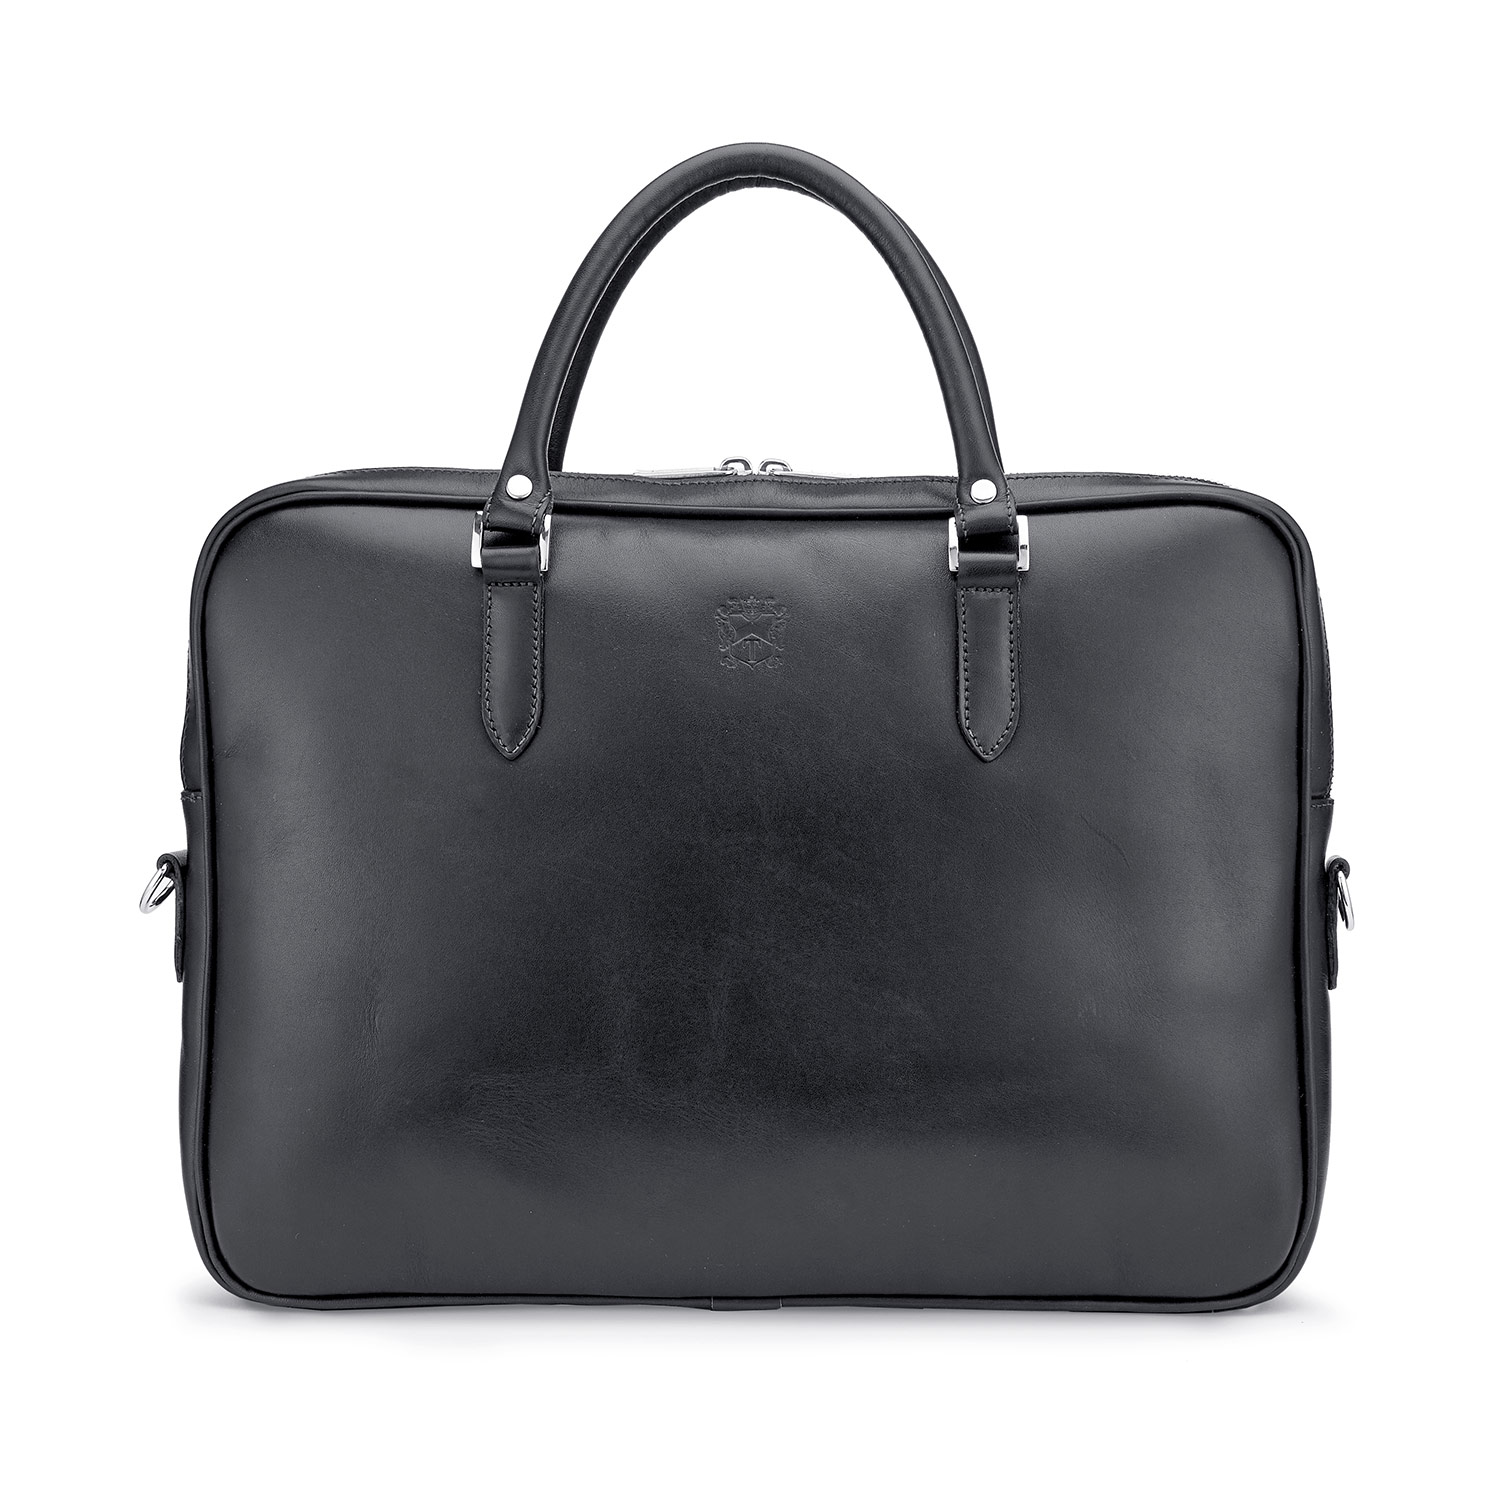 Tusting Piccadilly Leather Briefcase in Black Front